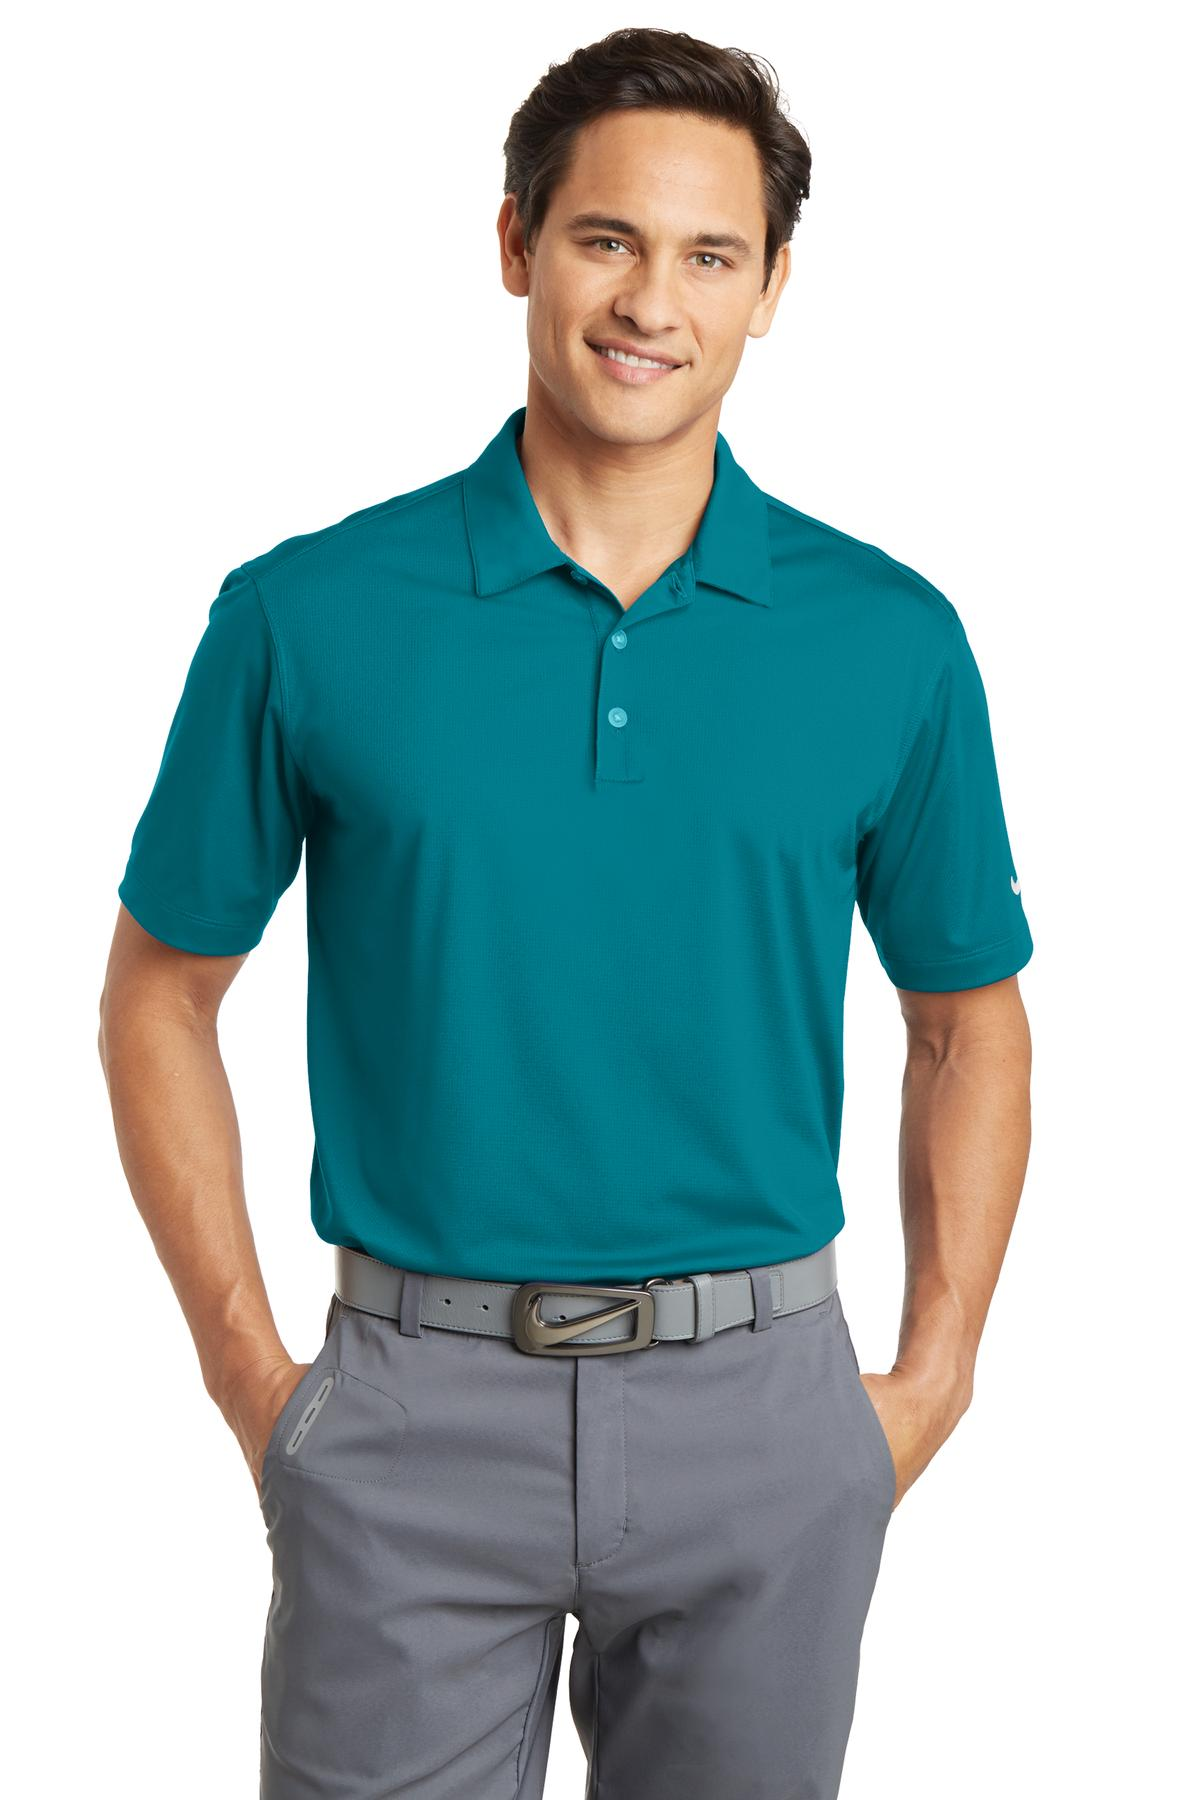 Nike Golf Dri Fit Vertical Mesh Polo 637167